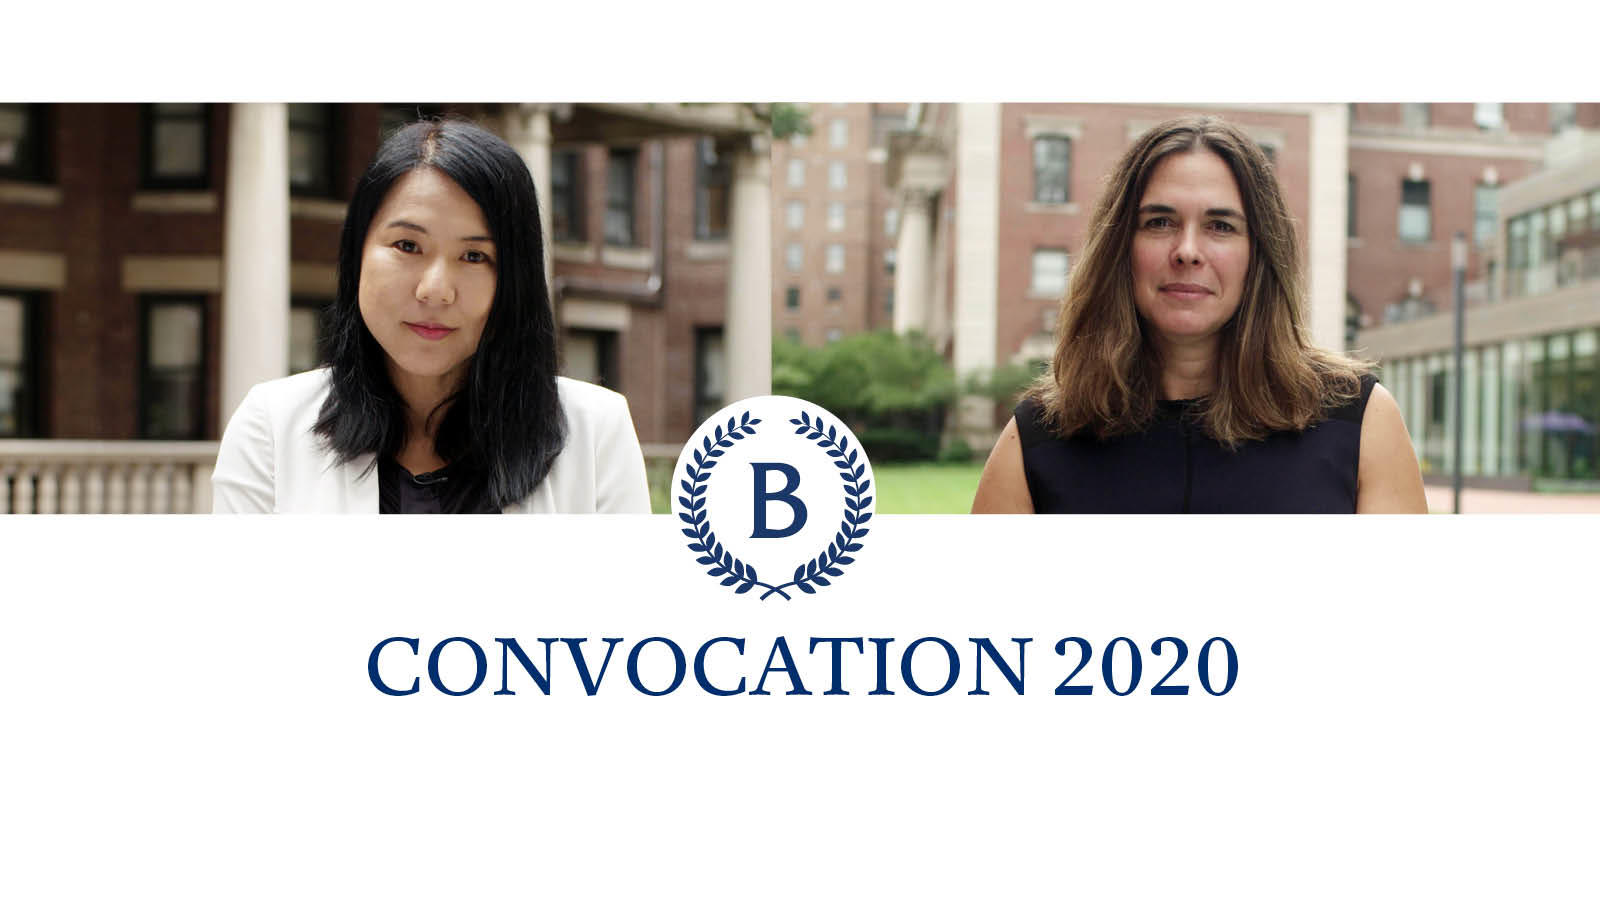 Convocation 2020